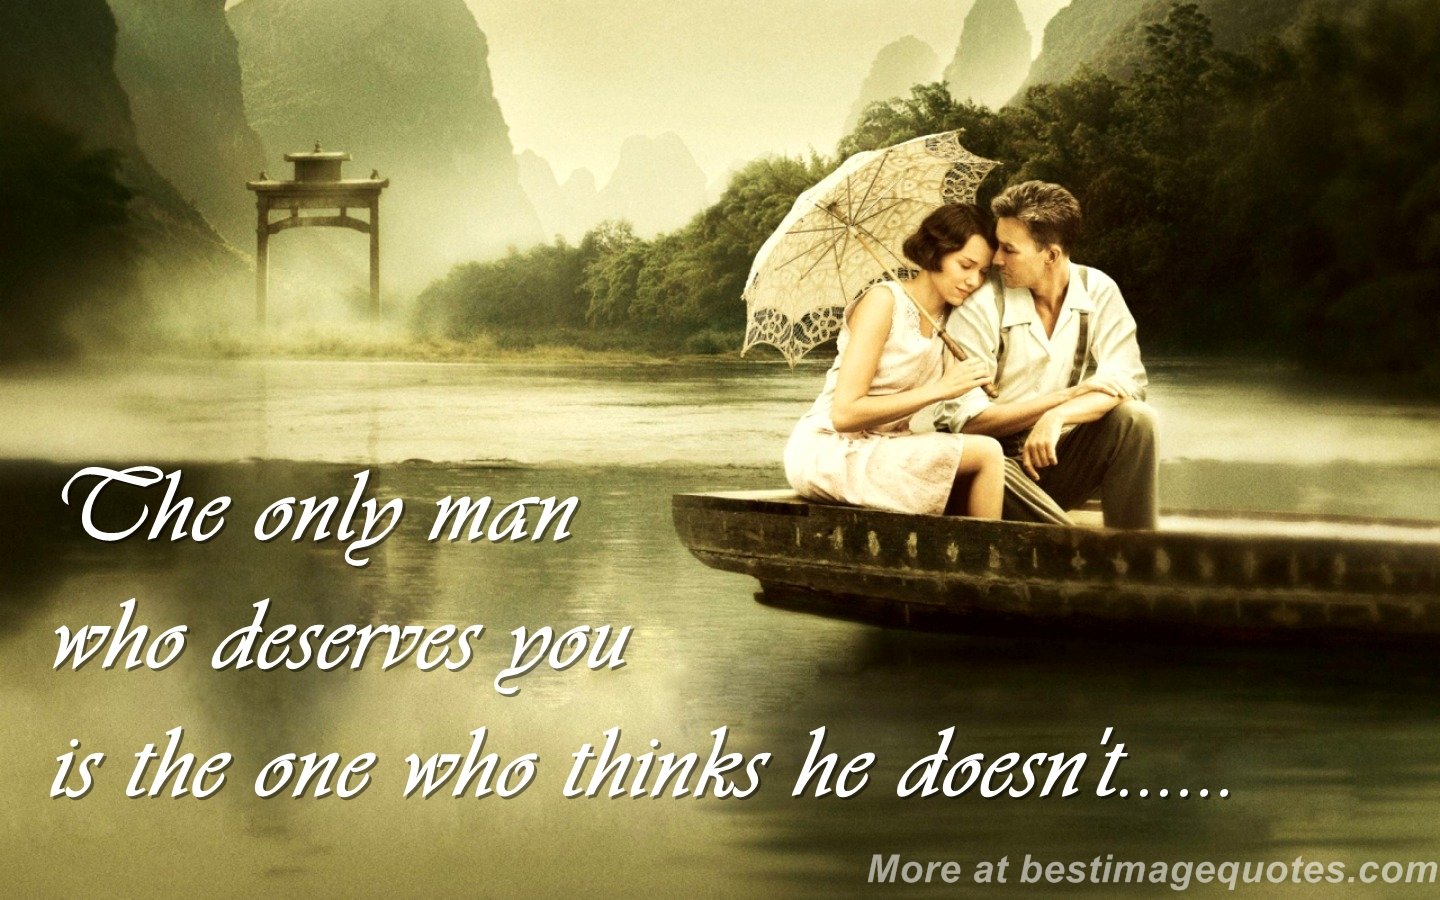 The only man who deserves you is the one who thinks he doesn t